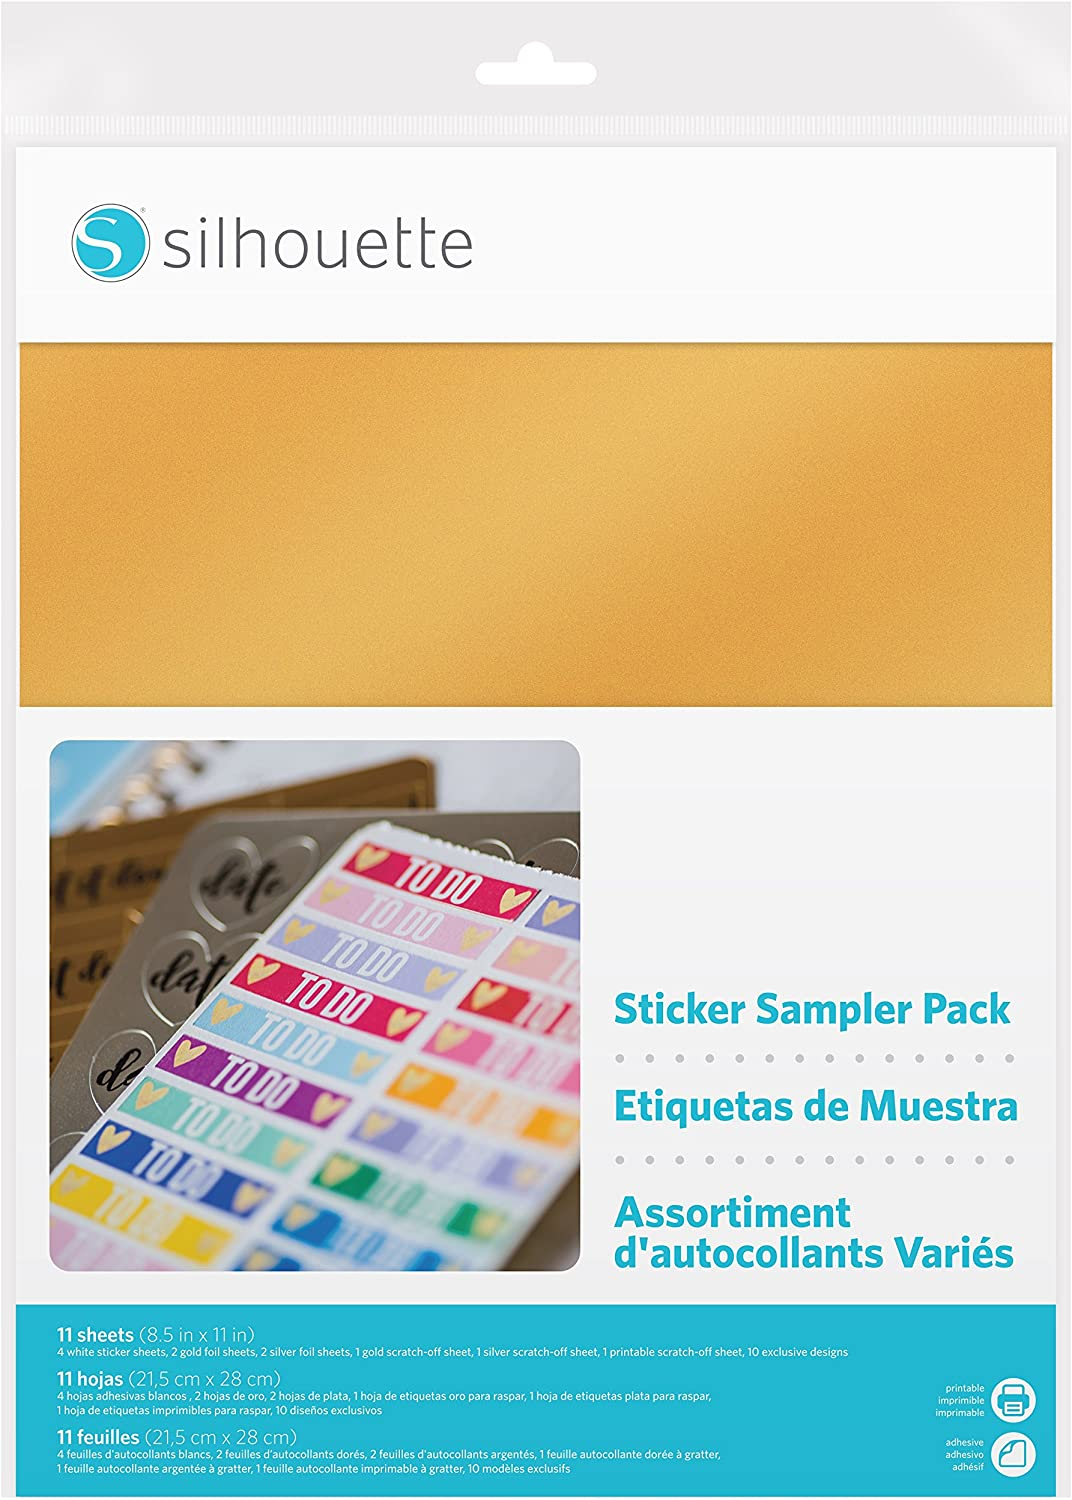 Silhouette Printable White Sticker Paper 2 Pack